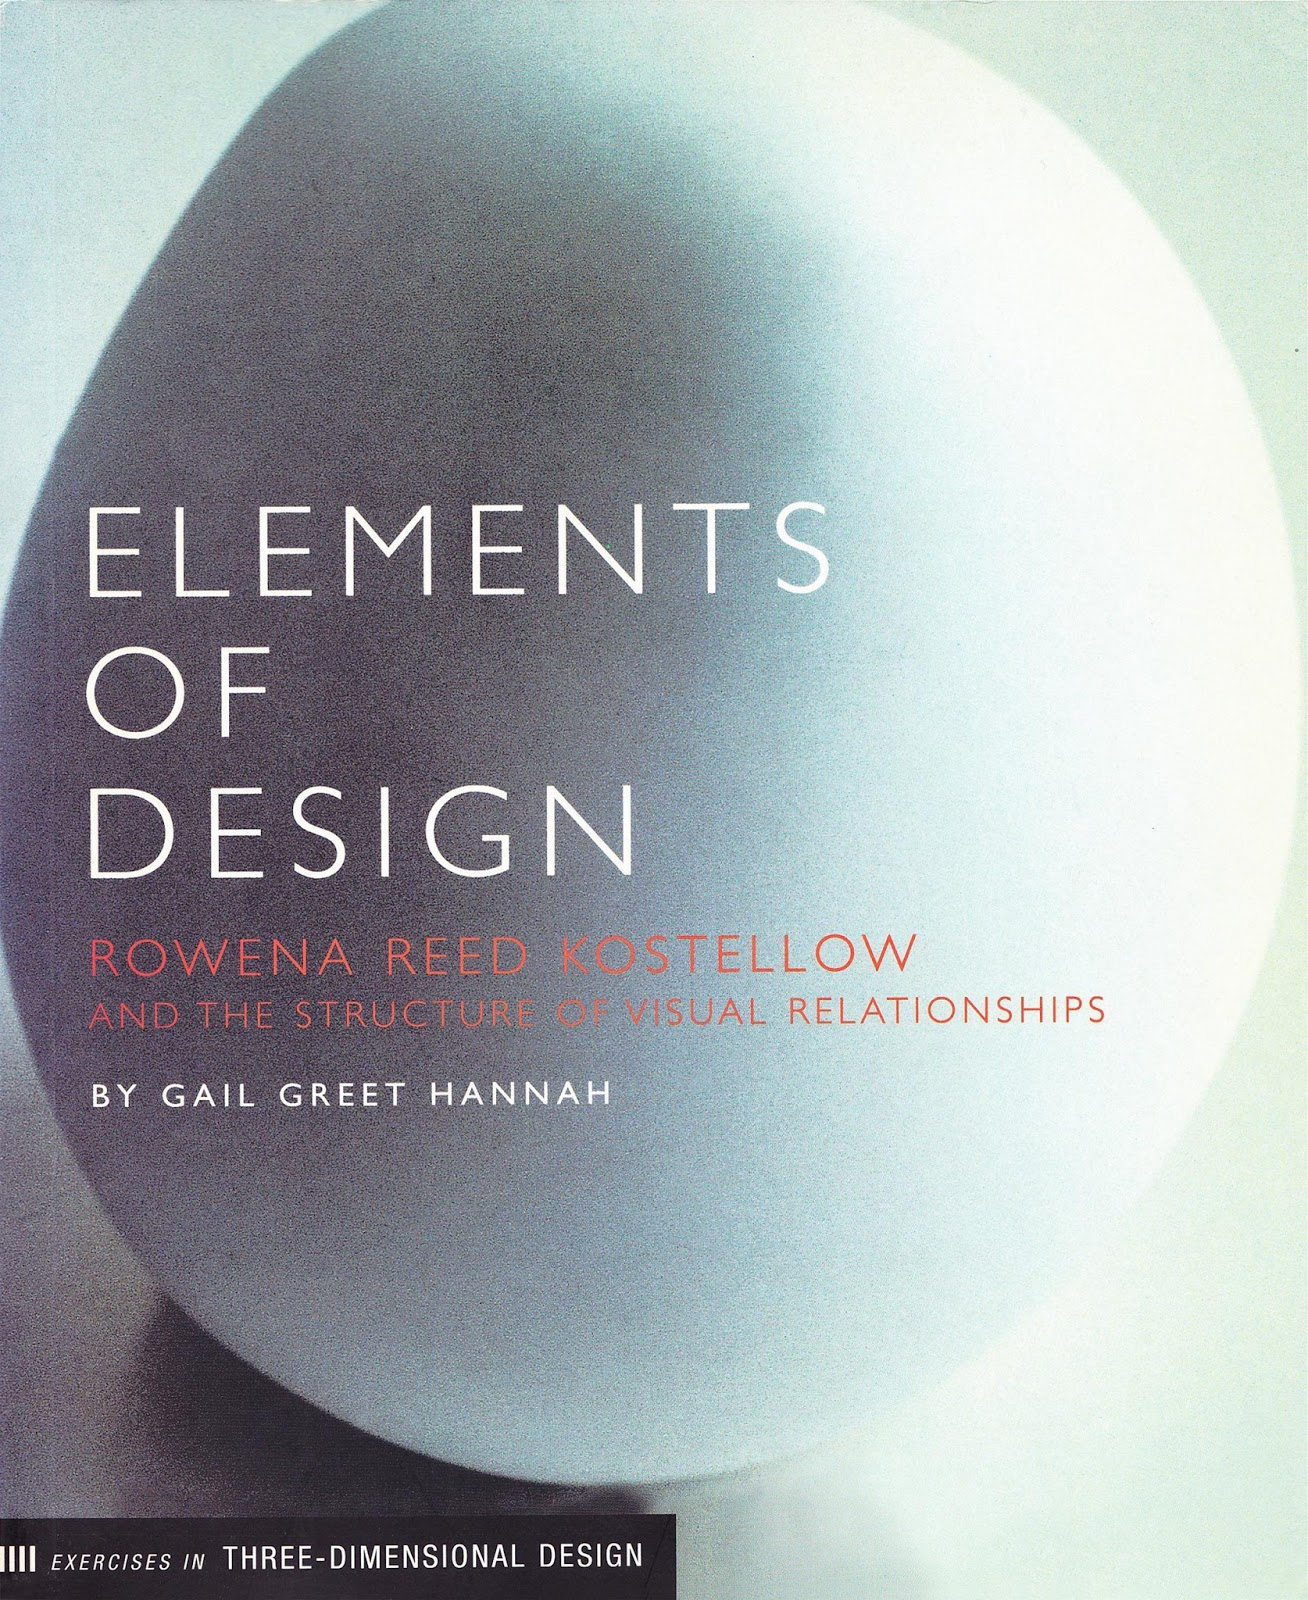 What Are The Elements Of Design : Hannah g ed elements of design rowena reed